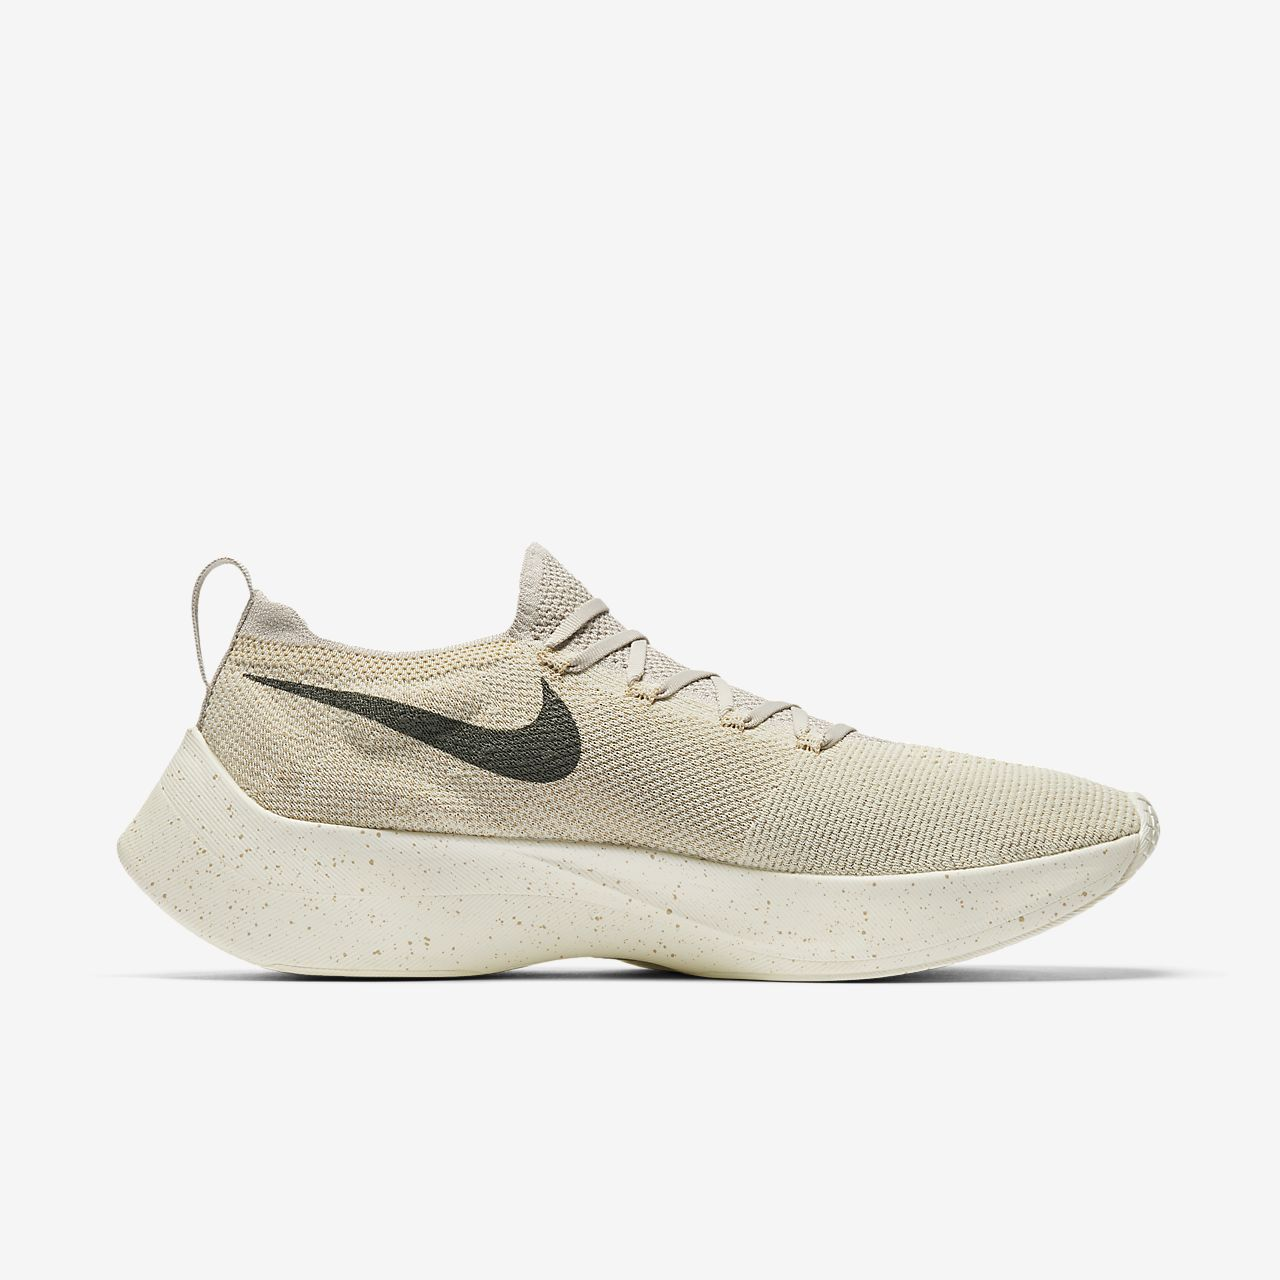 100% authentic bb04f 8e578 ... Chaussure Nike React Vapor Street Flyknit pour Homme